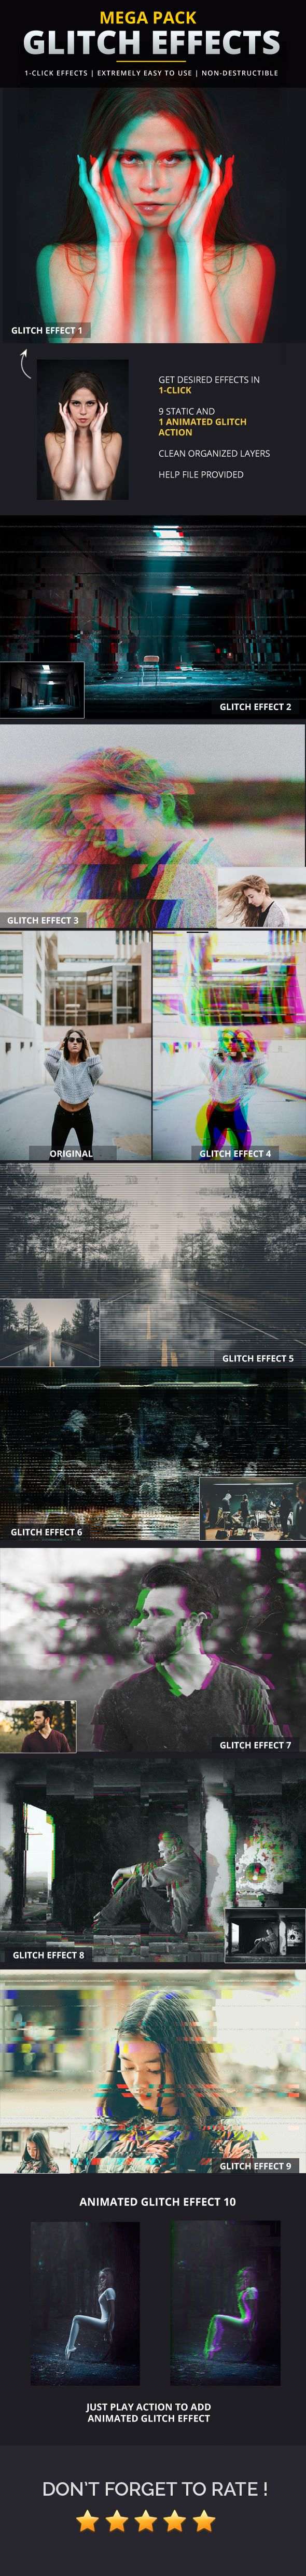 Glitch Effects Mega Pack - Photo Effects Actions